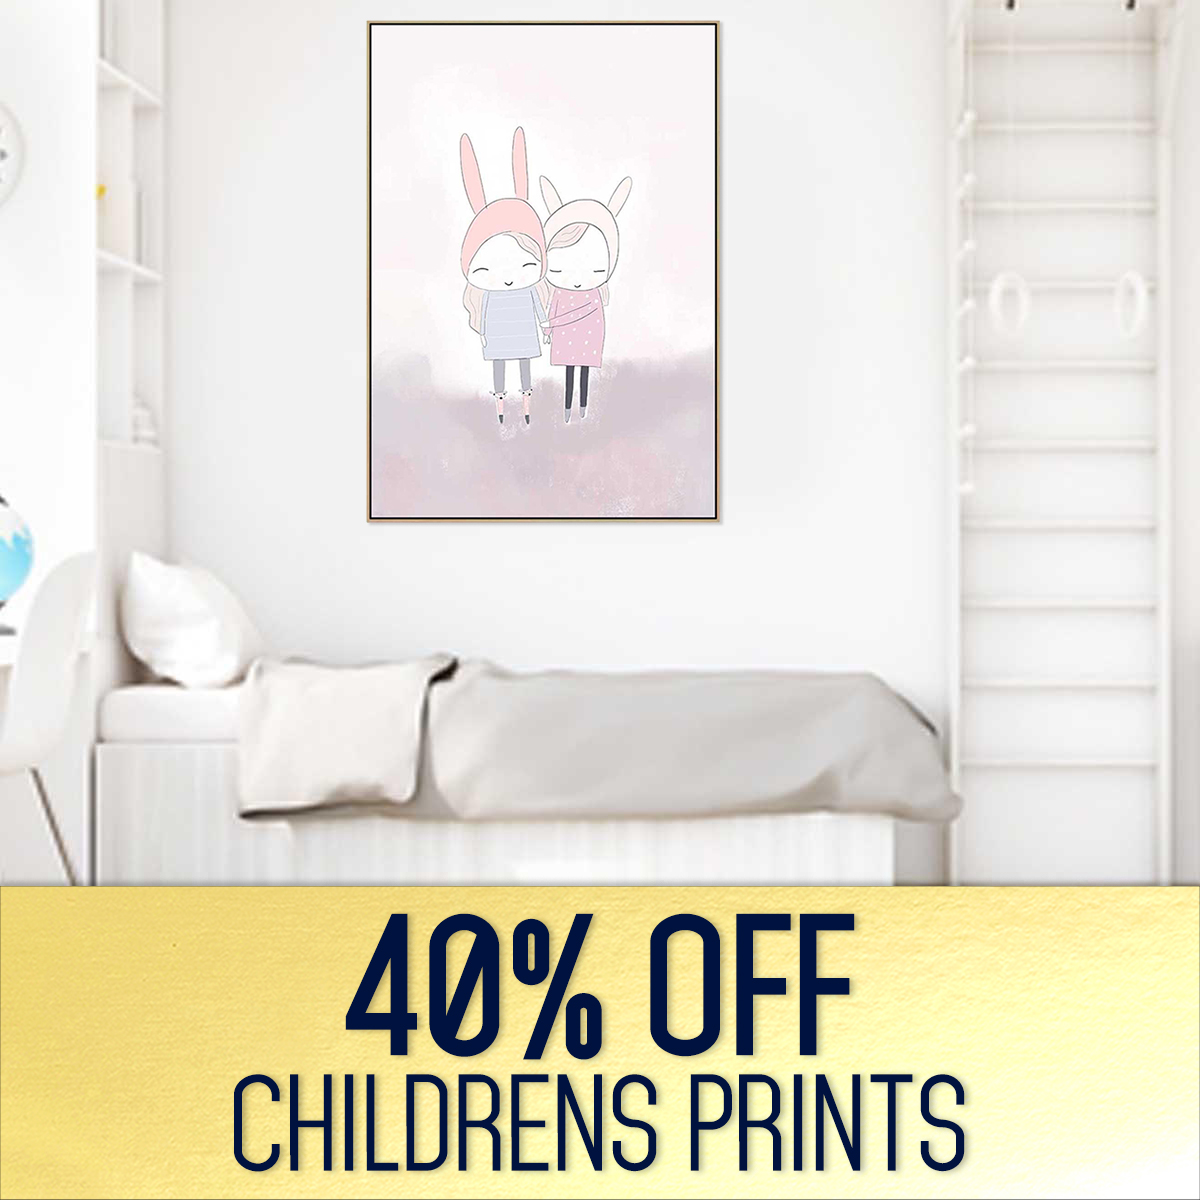 CHILDRENS PRINTS